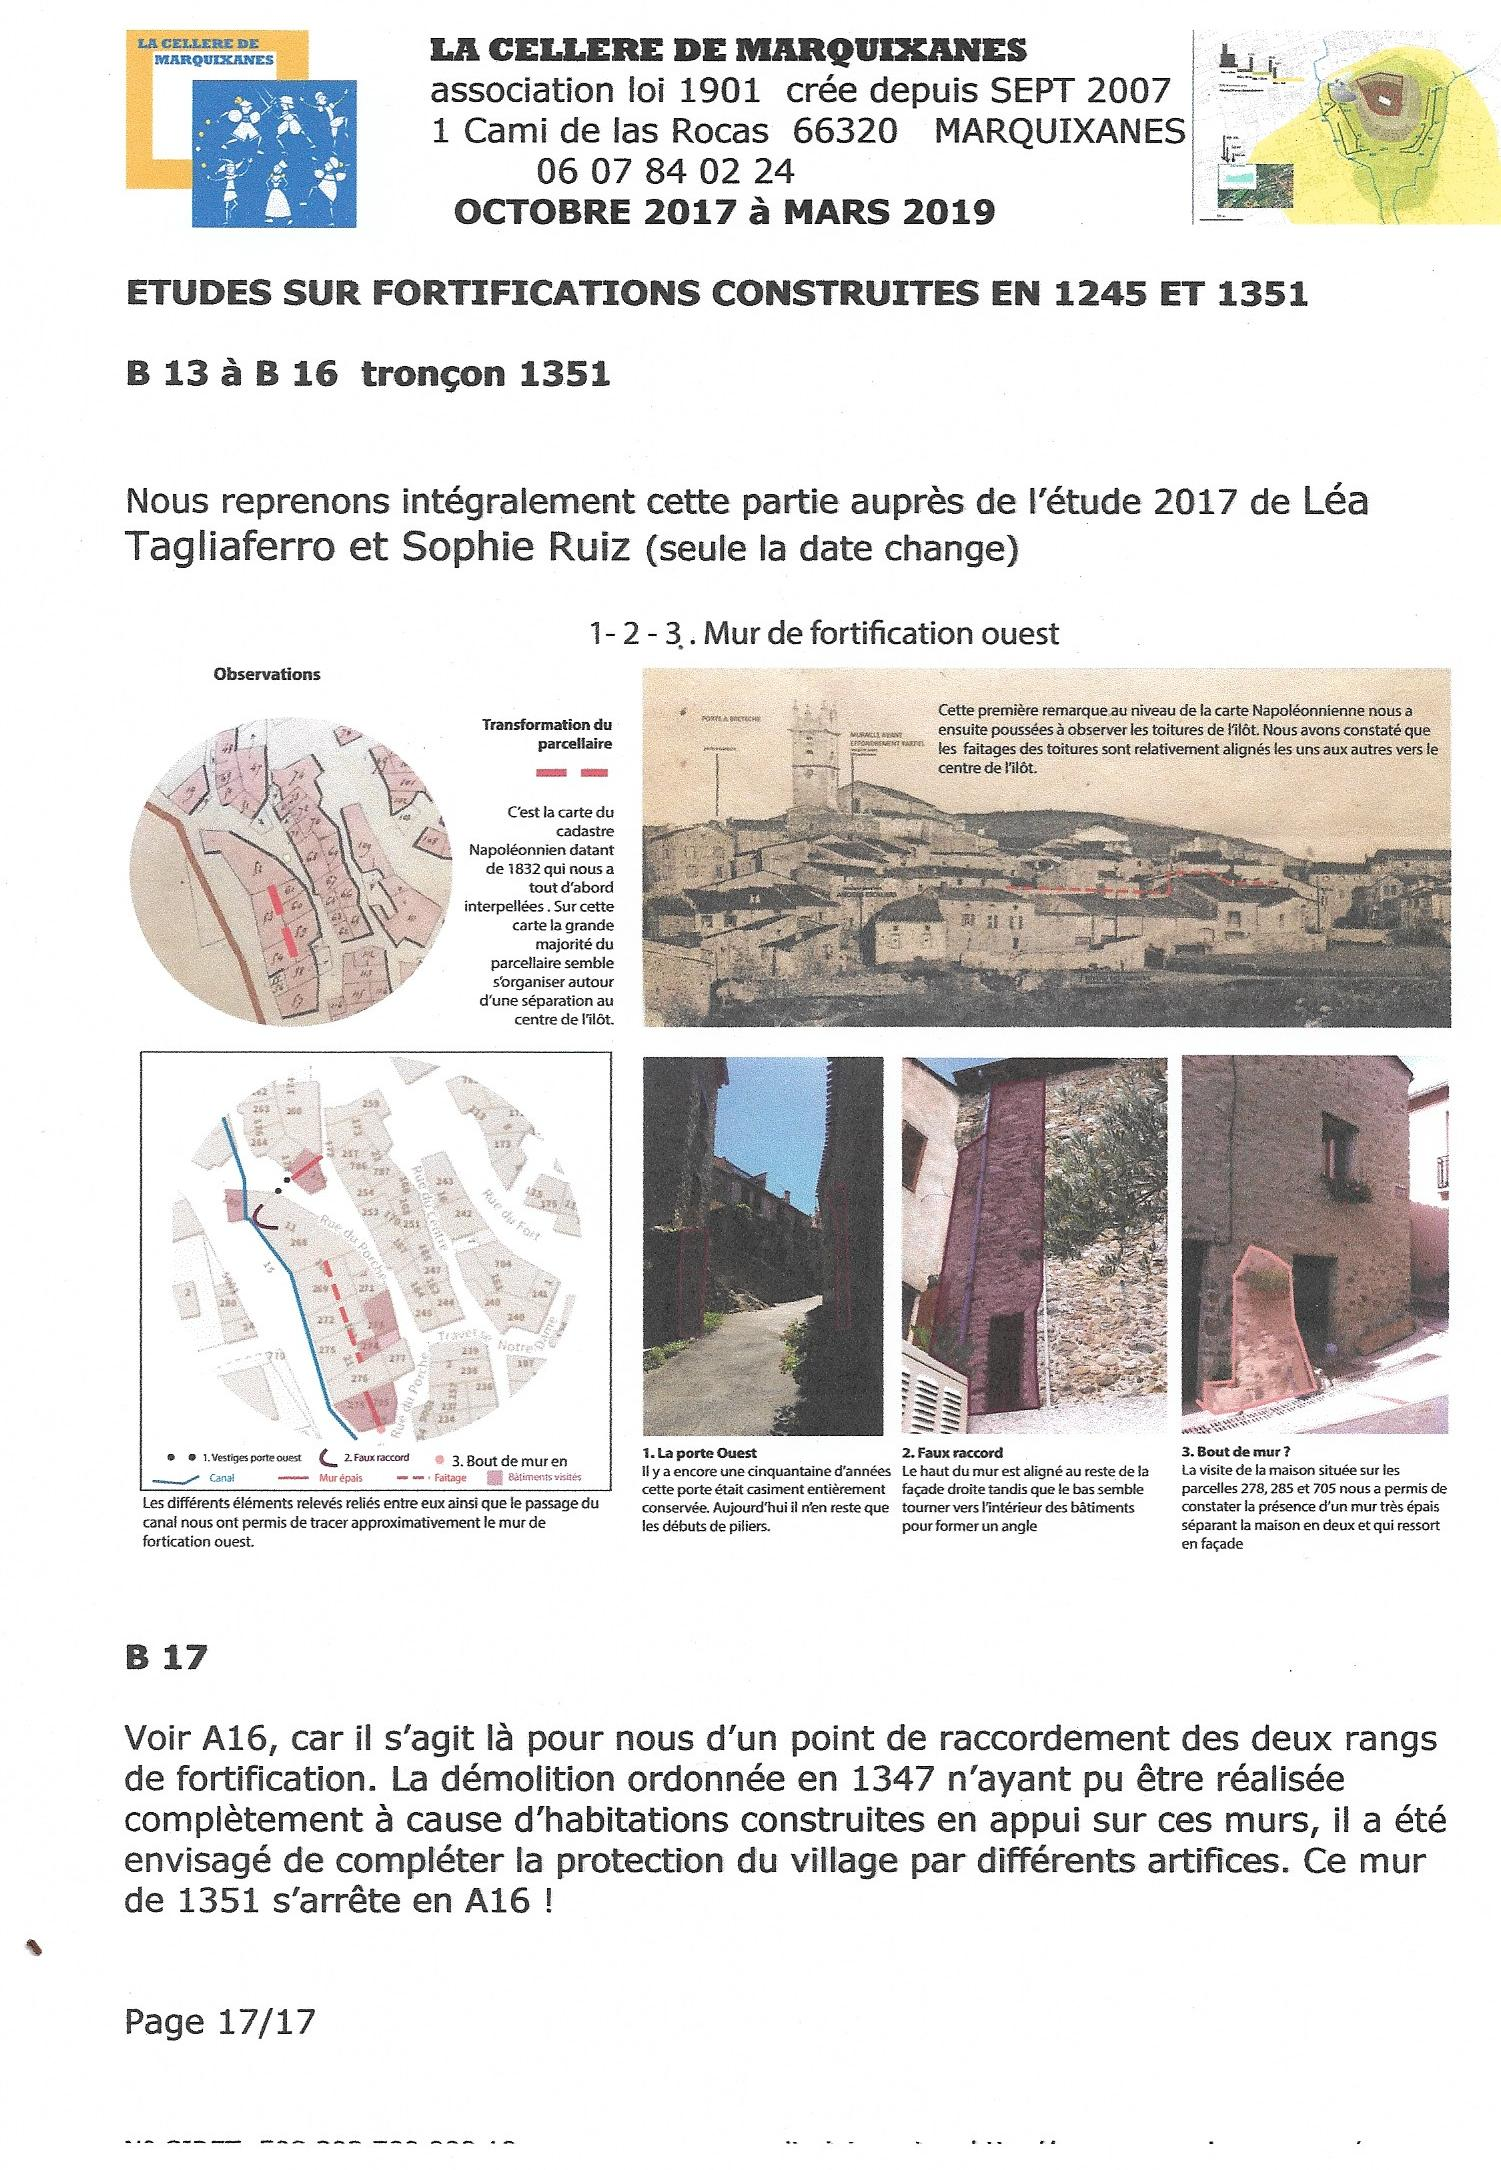 FORTIFICATIONS DE 1351 suite MARQUIXANES